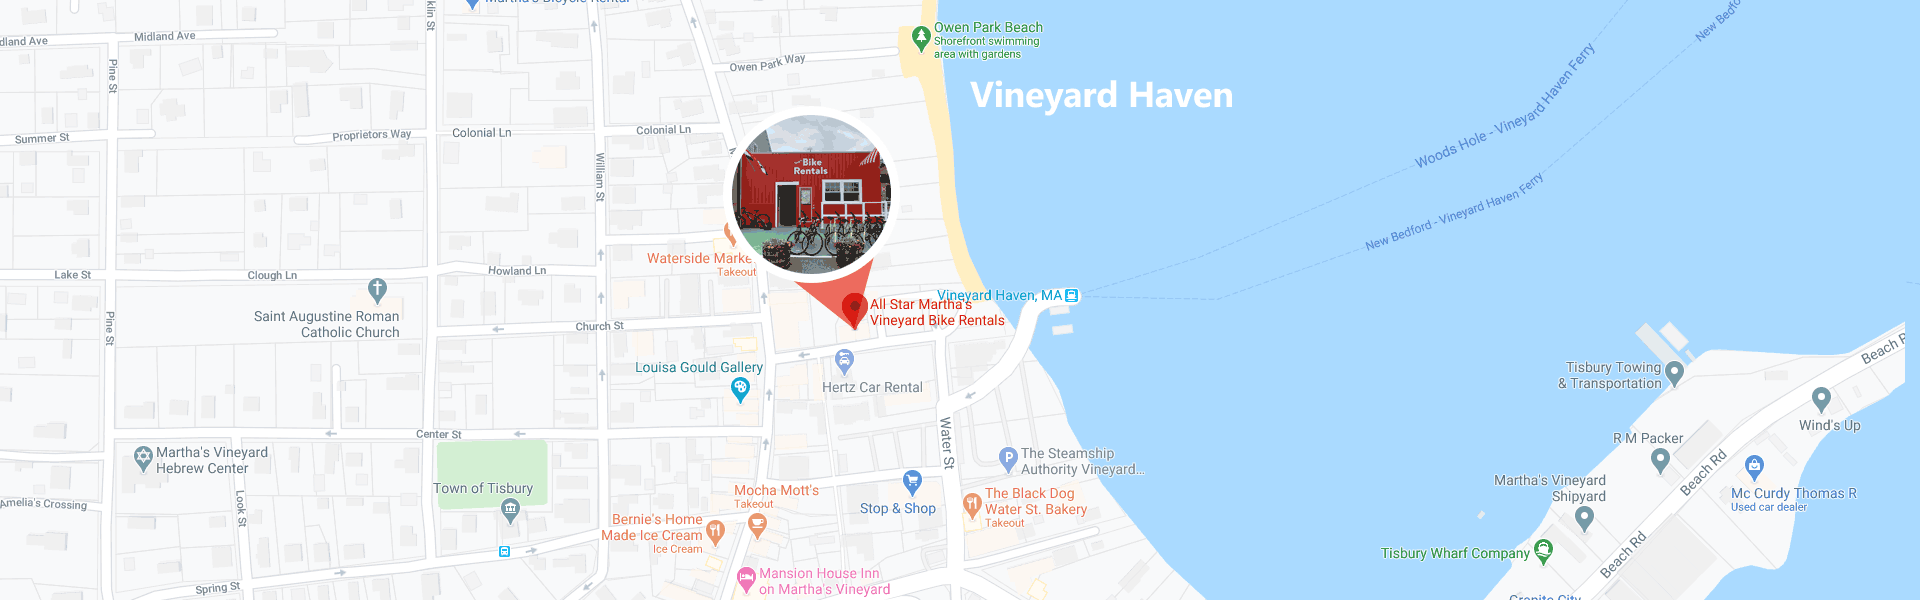 bike shop vineyard haven location